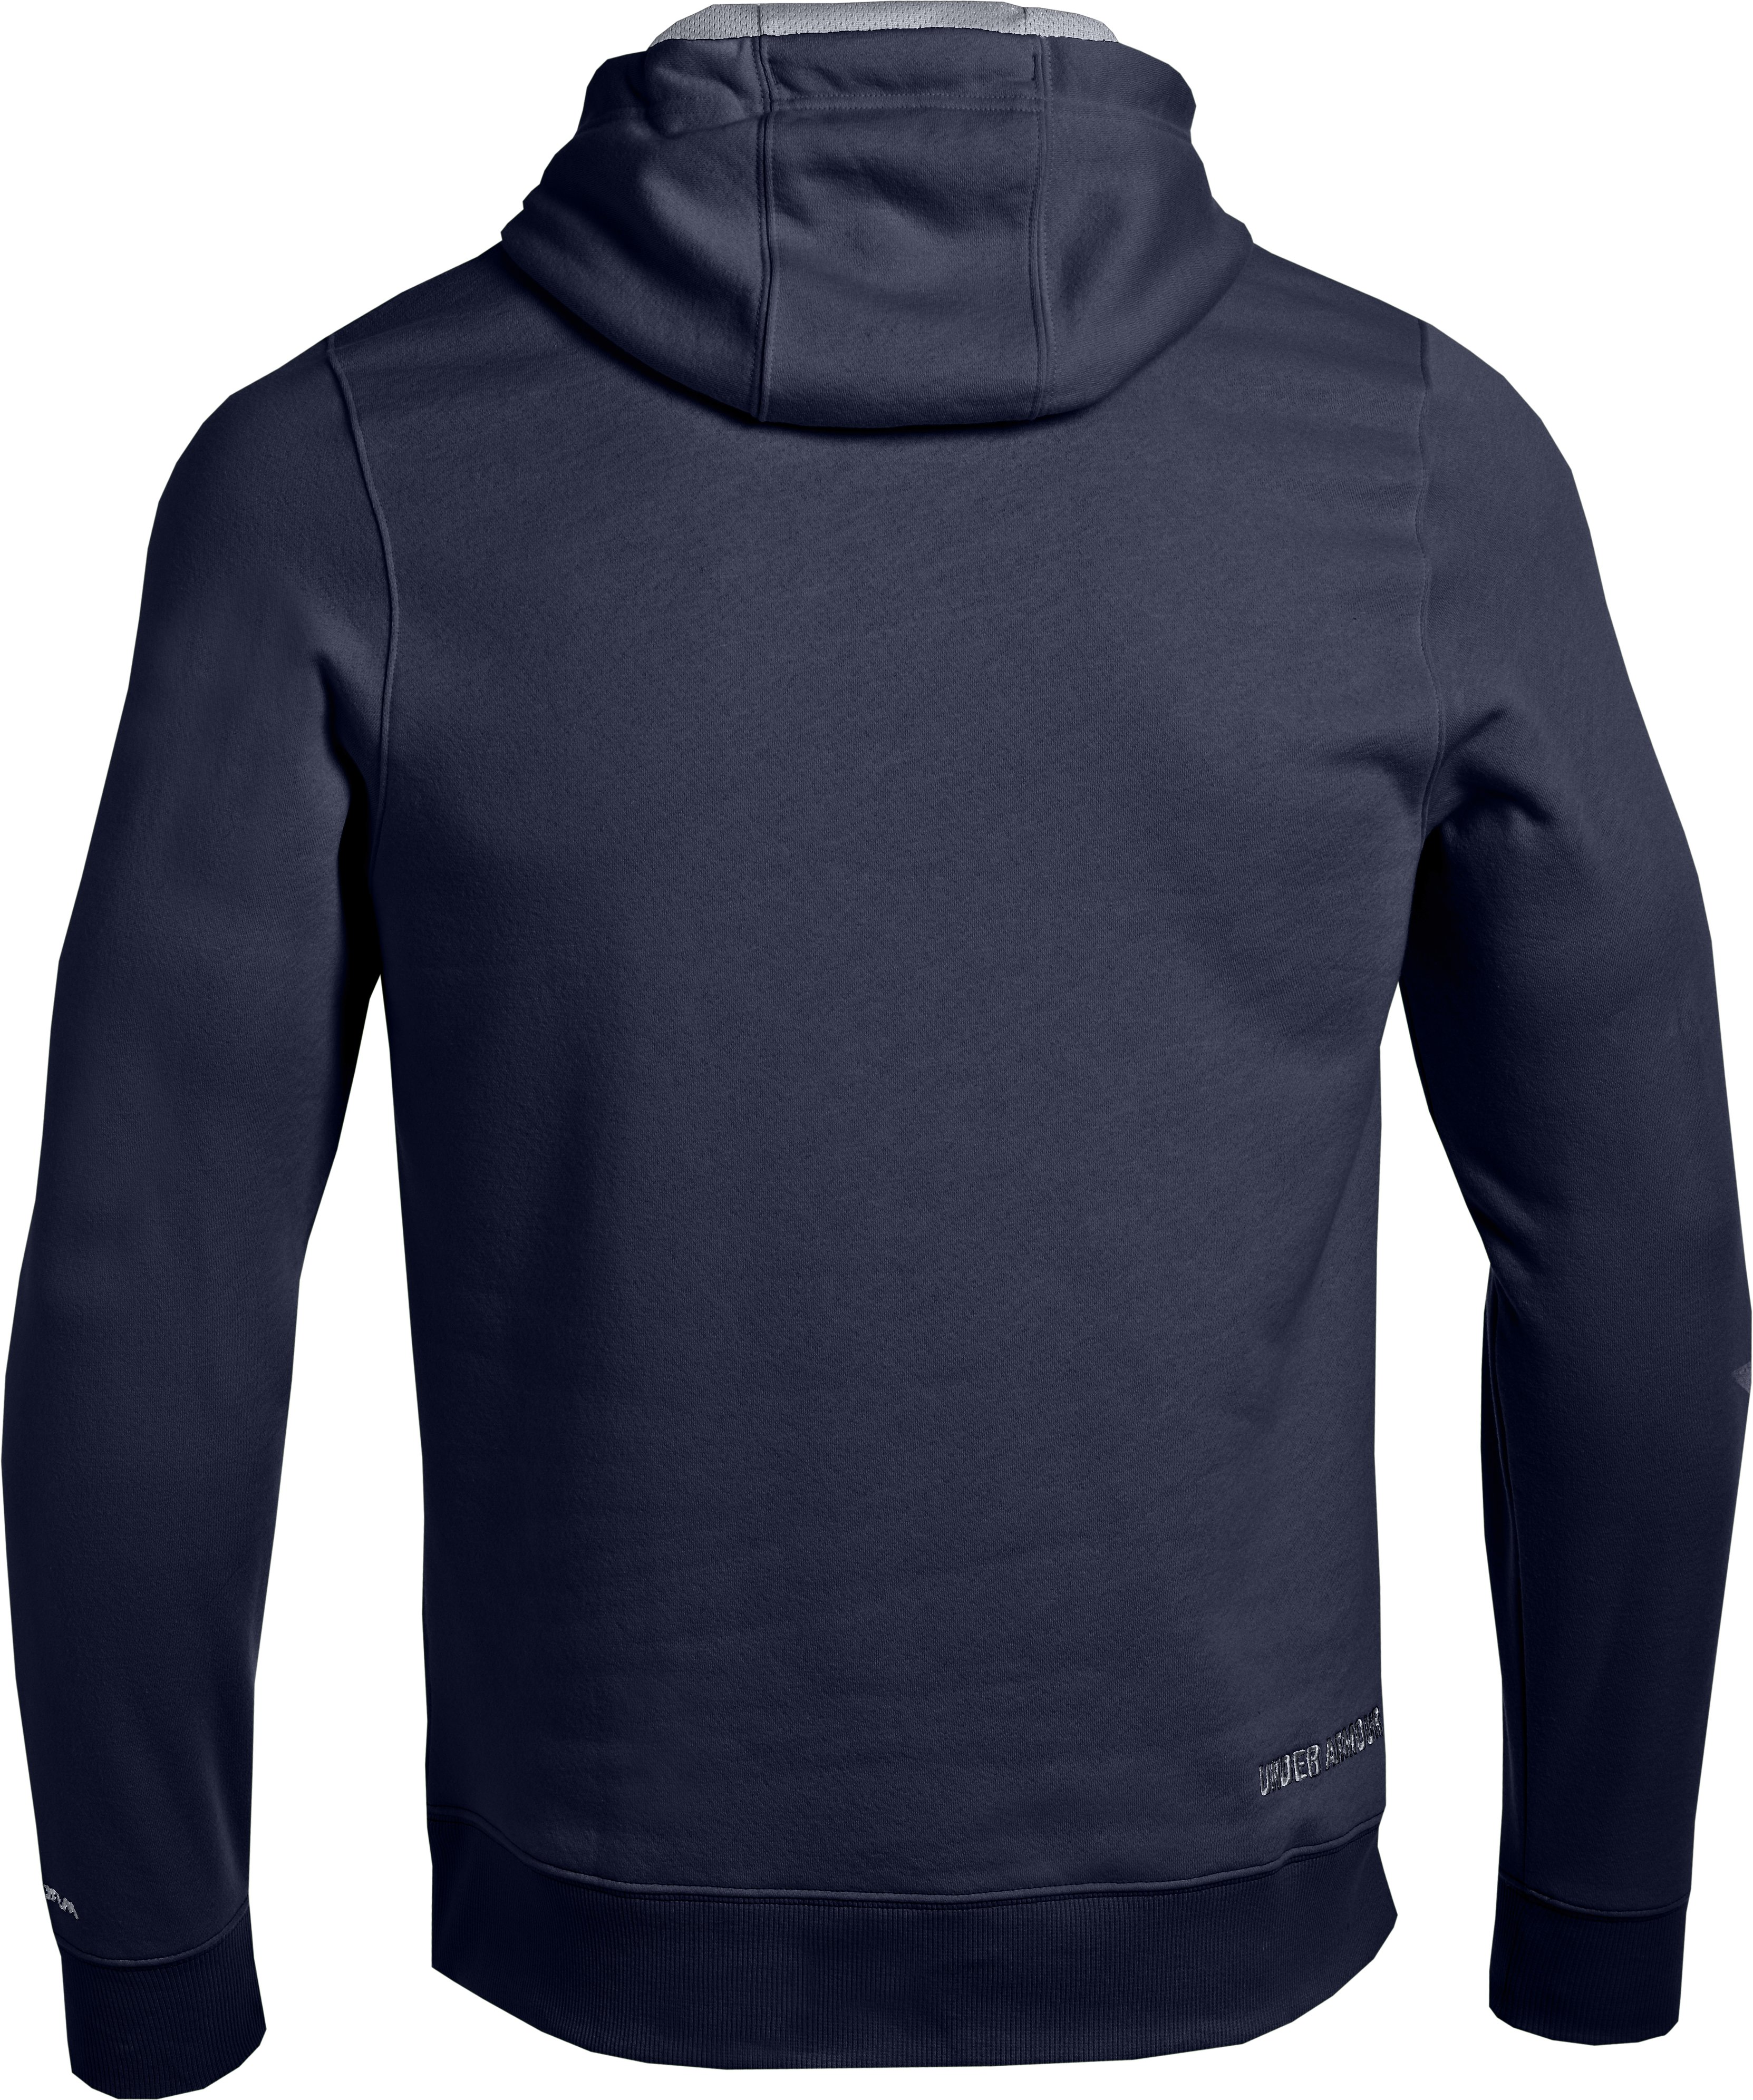 Men's Charged Cotton® Storm Transit Hoodie, Midnight Navy